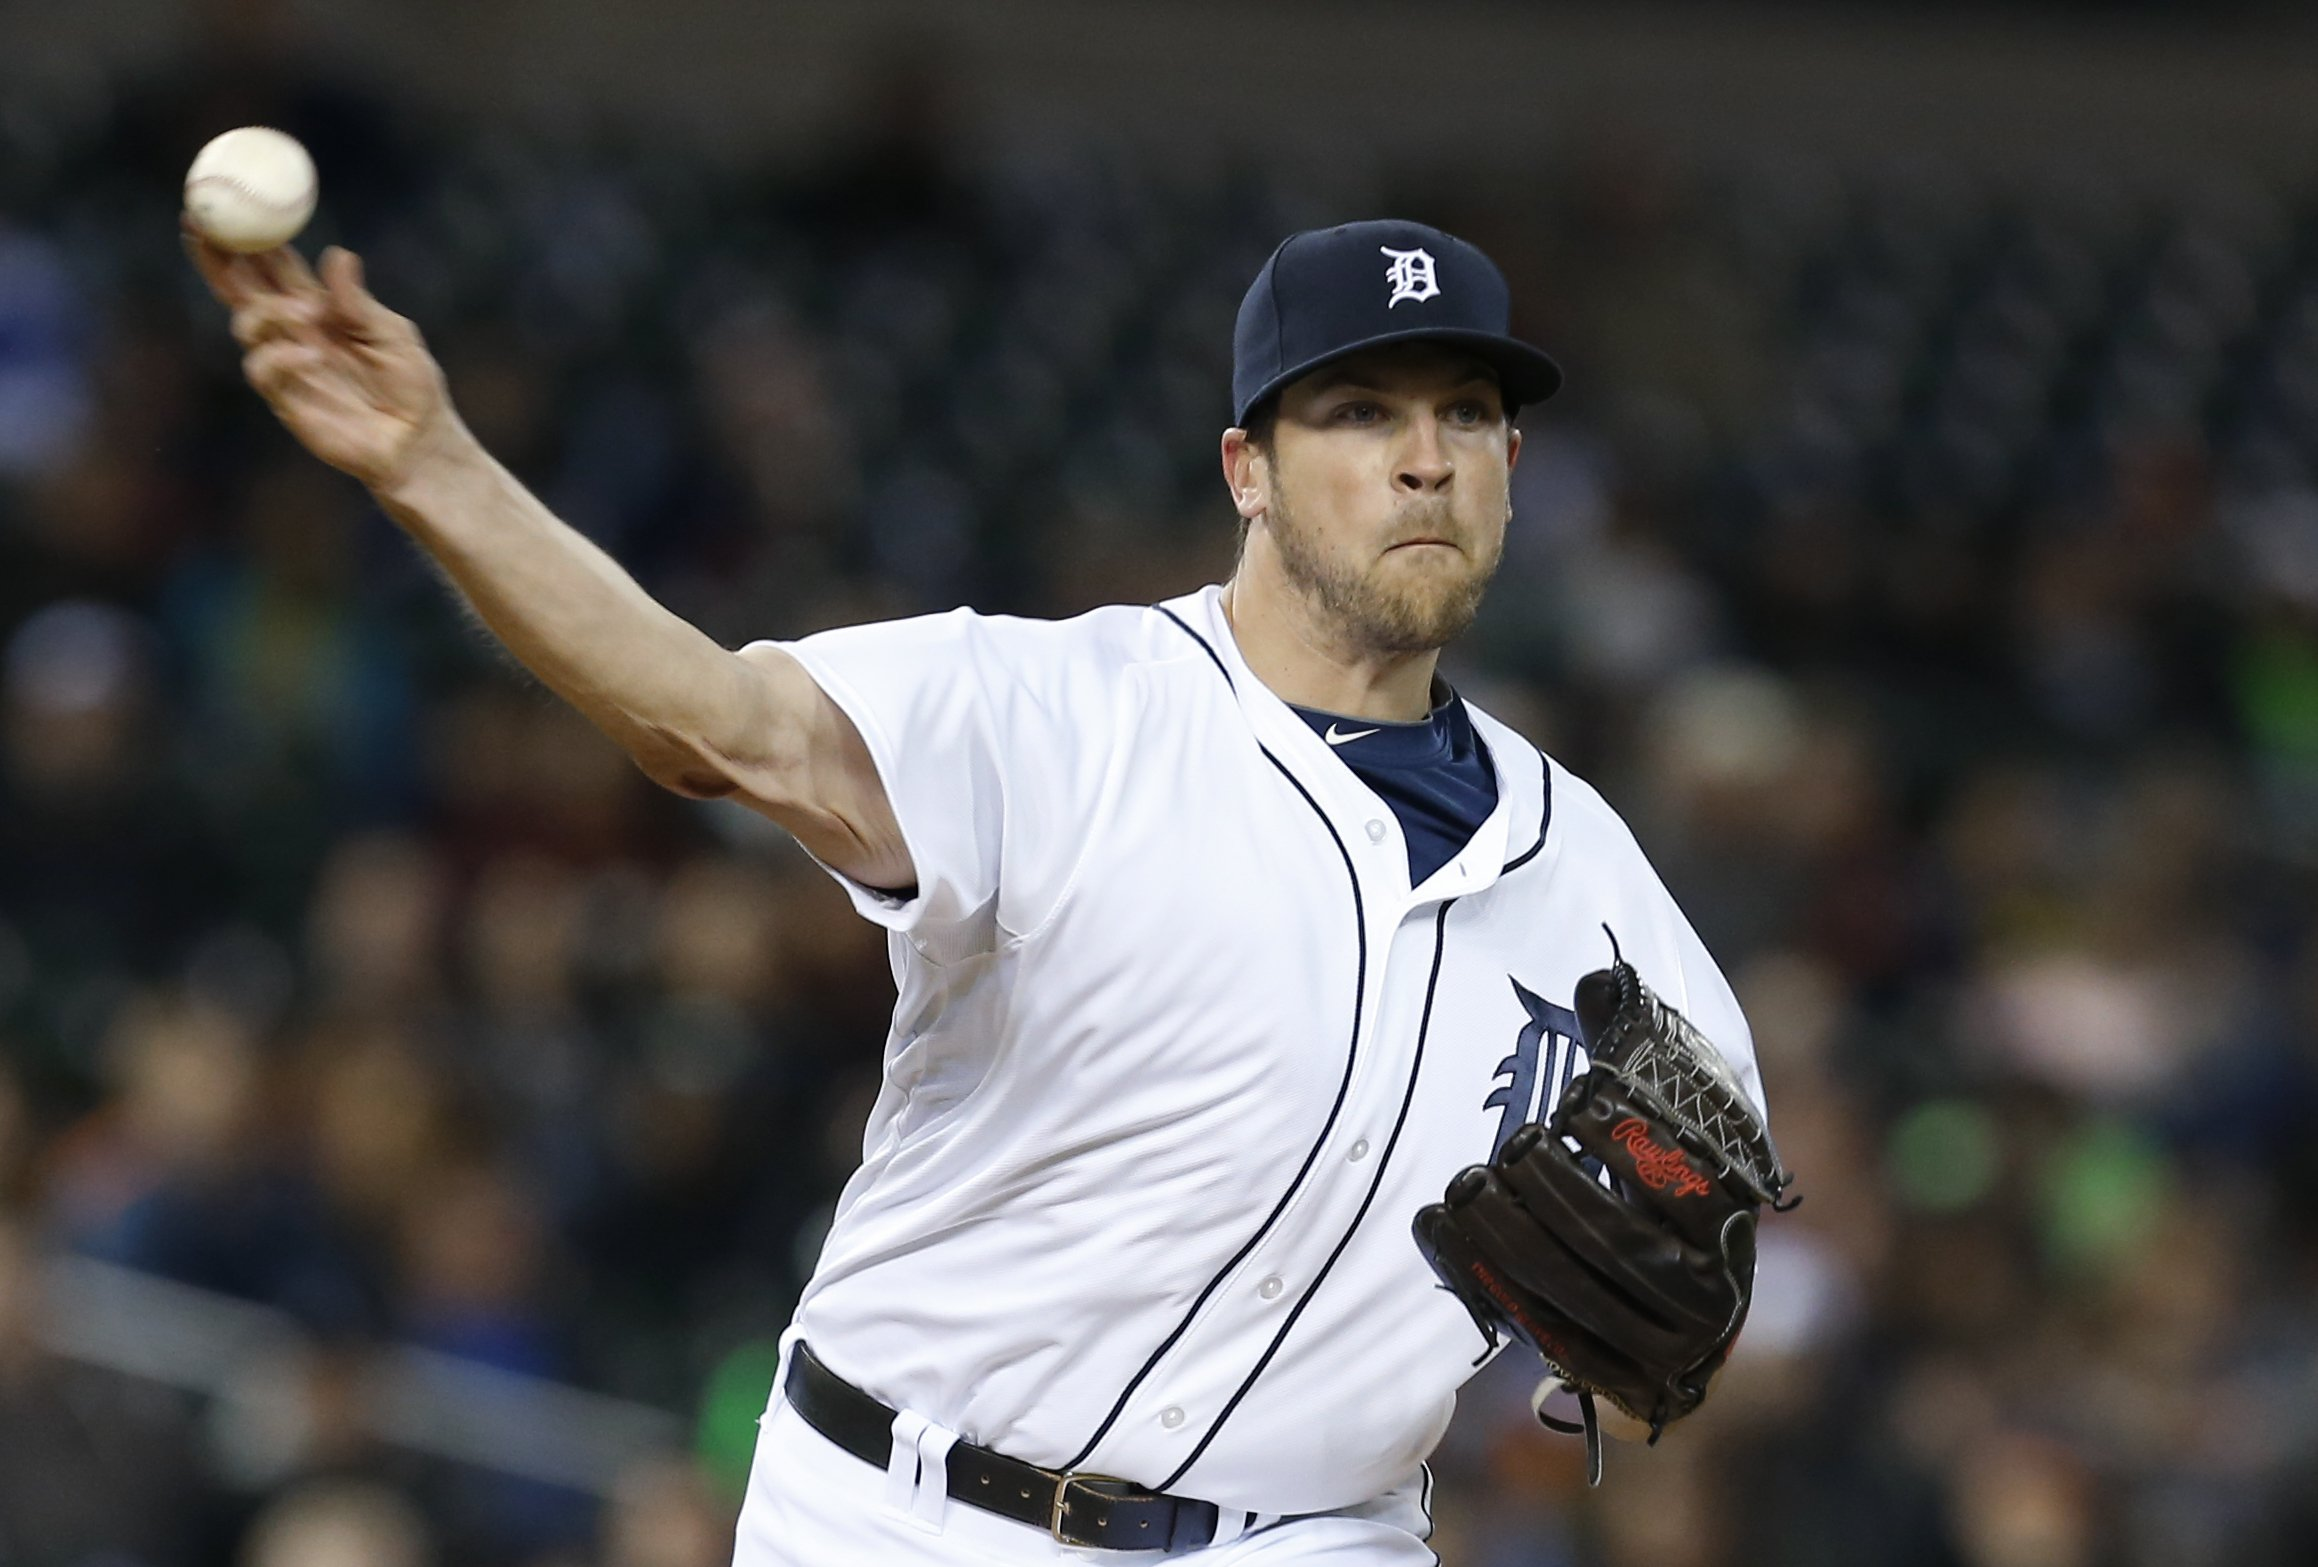 Detroit Tigers pitcher Evan Reed throws against the Houston Astros in the seventh inning of a baseball game in Detroit on May 6, 2014.